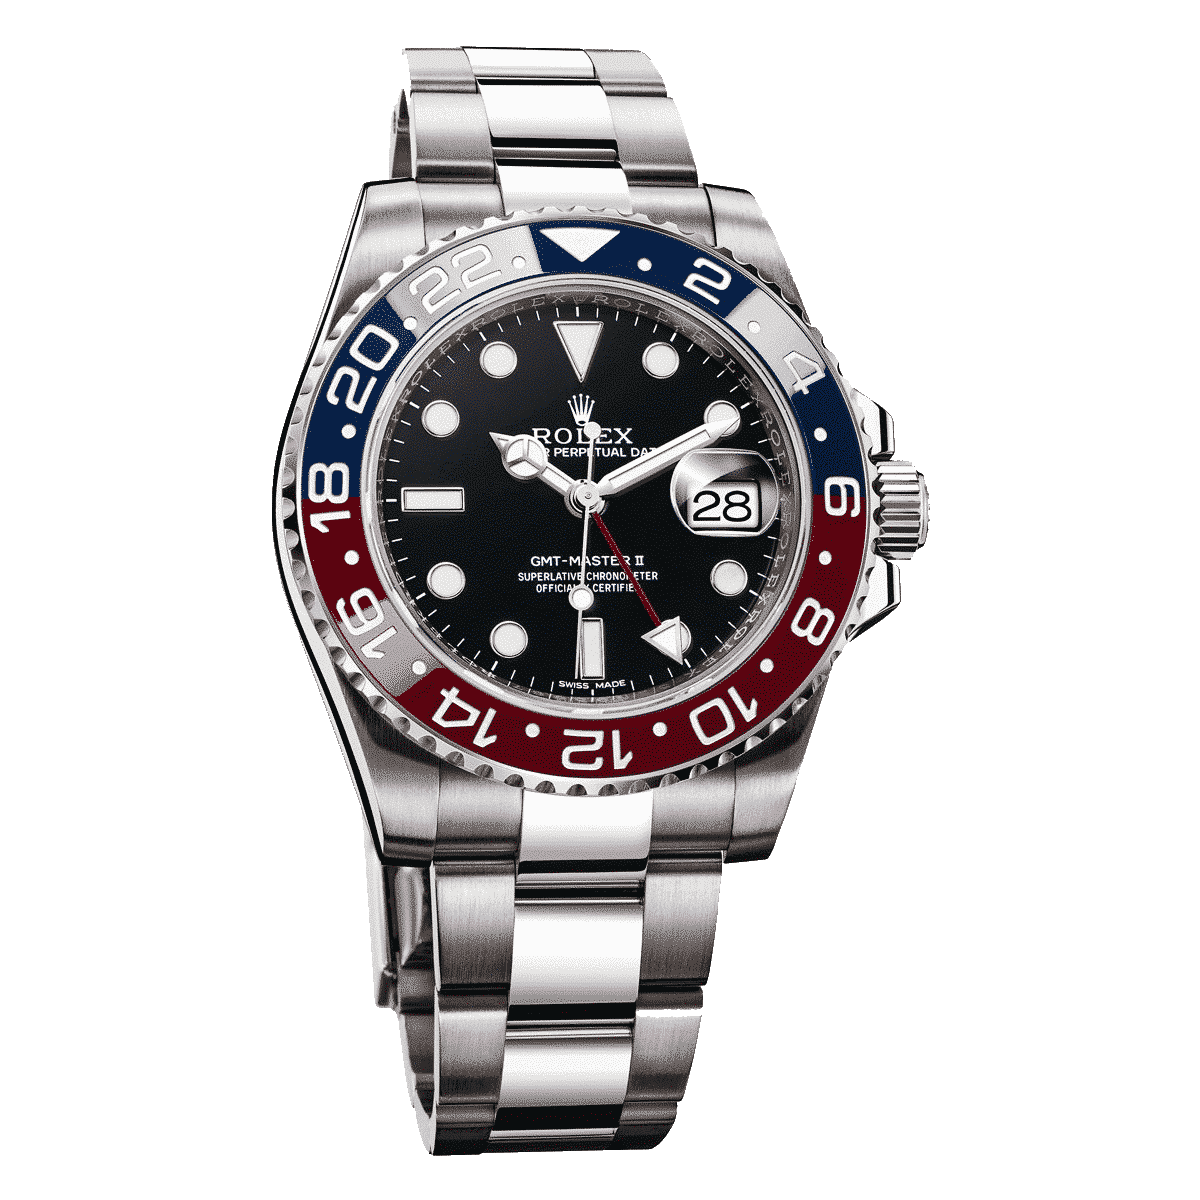 c9ca9686e3b58 Rolex-Oyster-Perpetual-Date-GMT Lionel Meylan Horlogerie Joaillerie Vevey